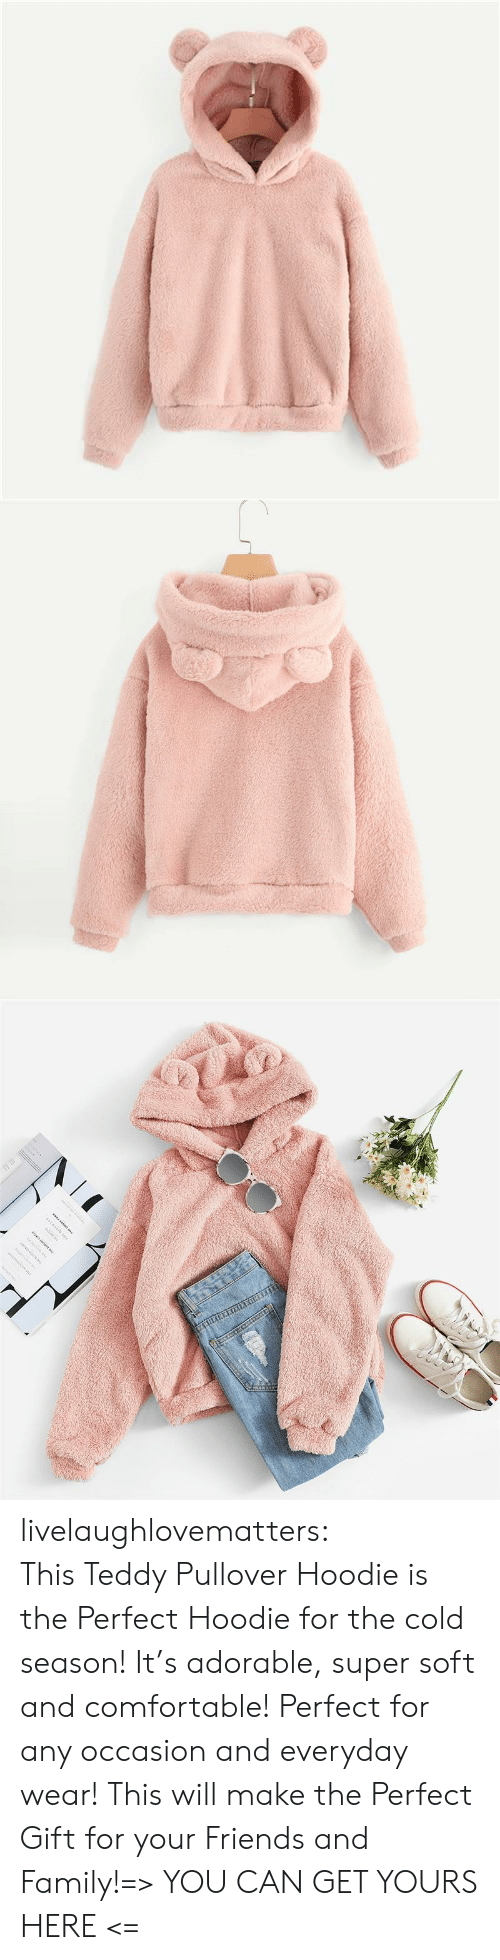 hoodie: www.w. livelaughlovematters:  This Teddy Pullover Hoodie is the Perfect Hoodie for the cold season! It's adorable, super soft and comfortable! Perfect for any occasion and everyday wear! This will make the Perfect Gift for your Friends and Family!=> YOU CAN GET YOURS HERE <=